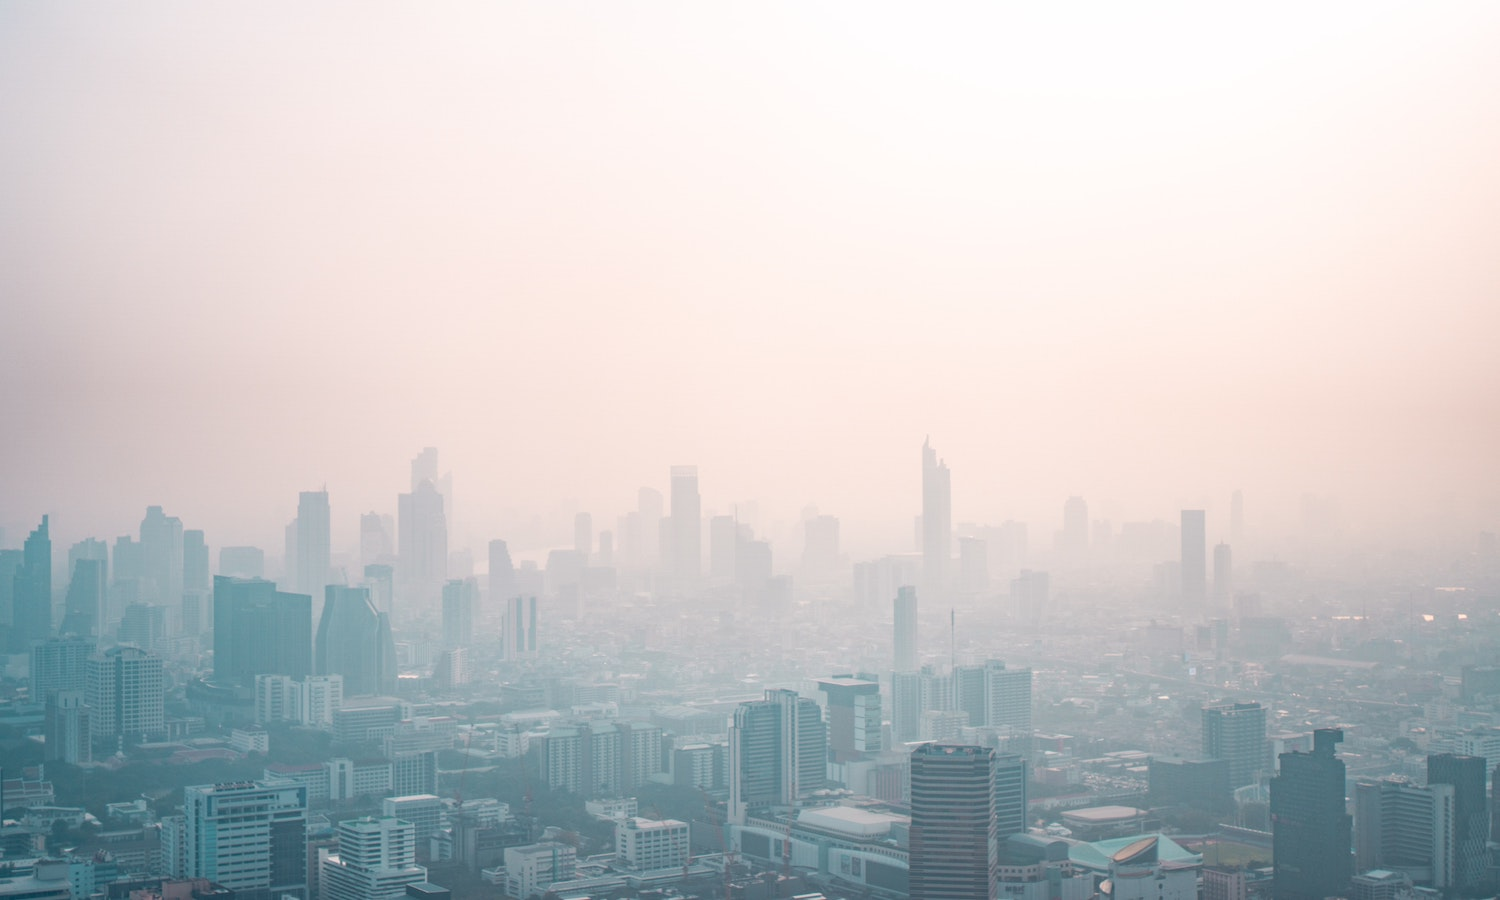 Thick smog over a busy city